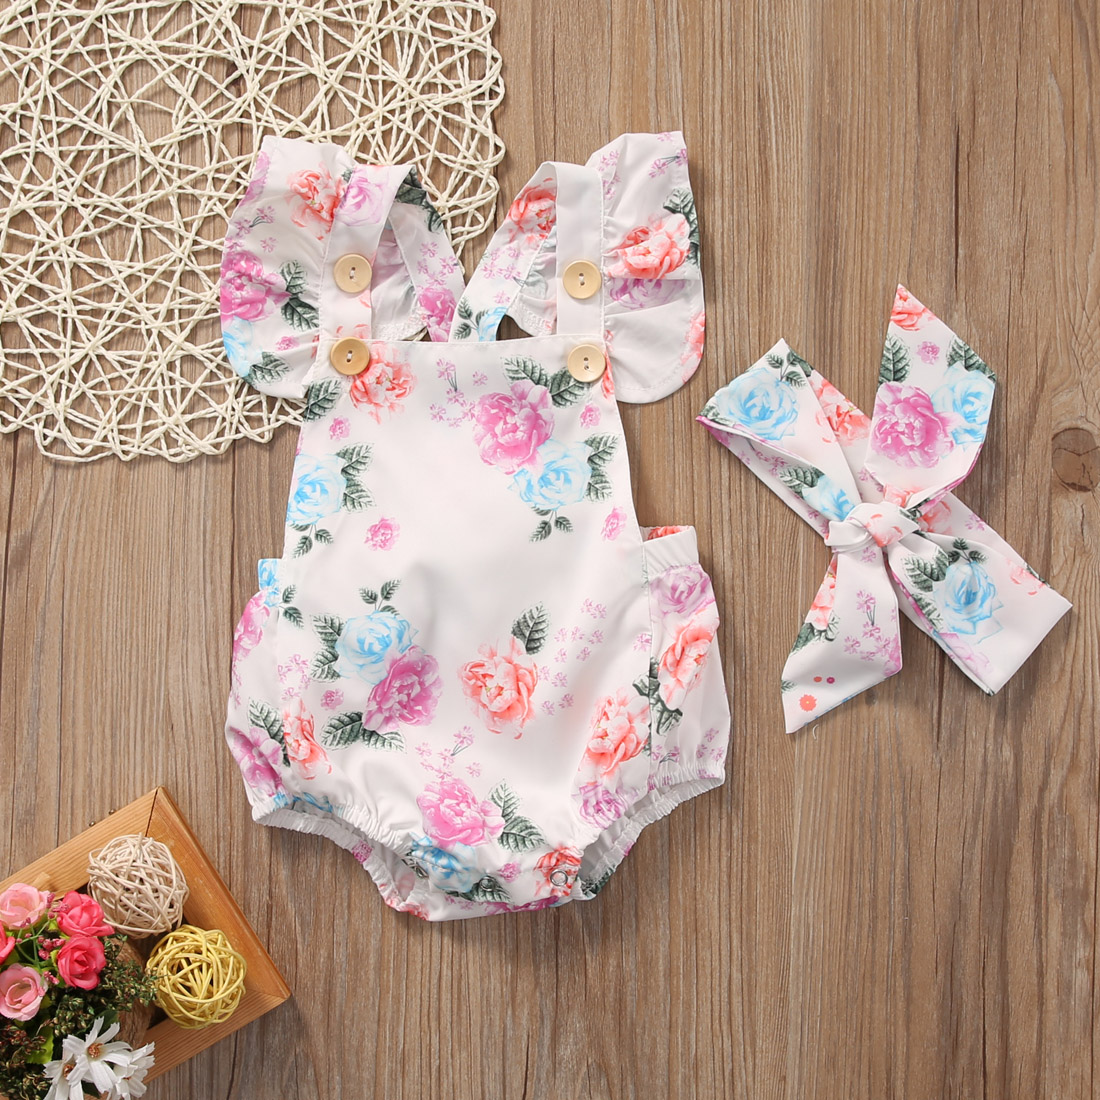 0 24M Adorable Baby Girls Floral Romper Summer Infant Toddler Baby Girl Short Ruffle Sleeve Clothes 0-24M Adorable Baby Girls Floral Romper Summer Infant Toddler Baby Girl Short Ruffle Sleeve Clothes Sunsuit Set